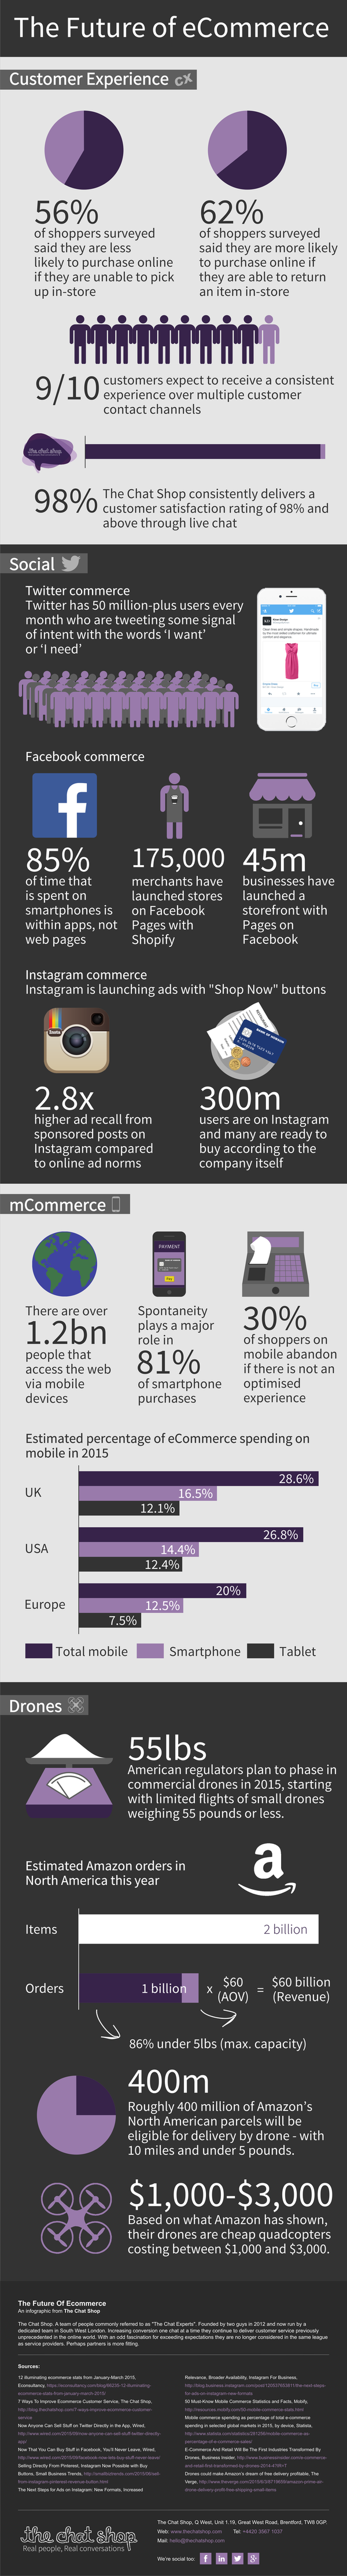 The Future Of eCommerce Infographic